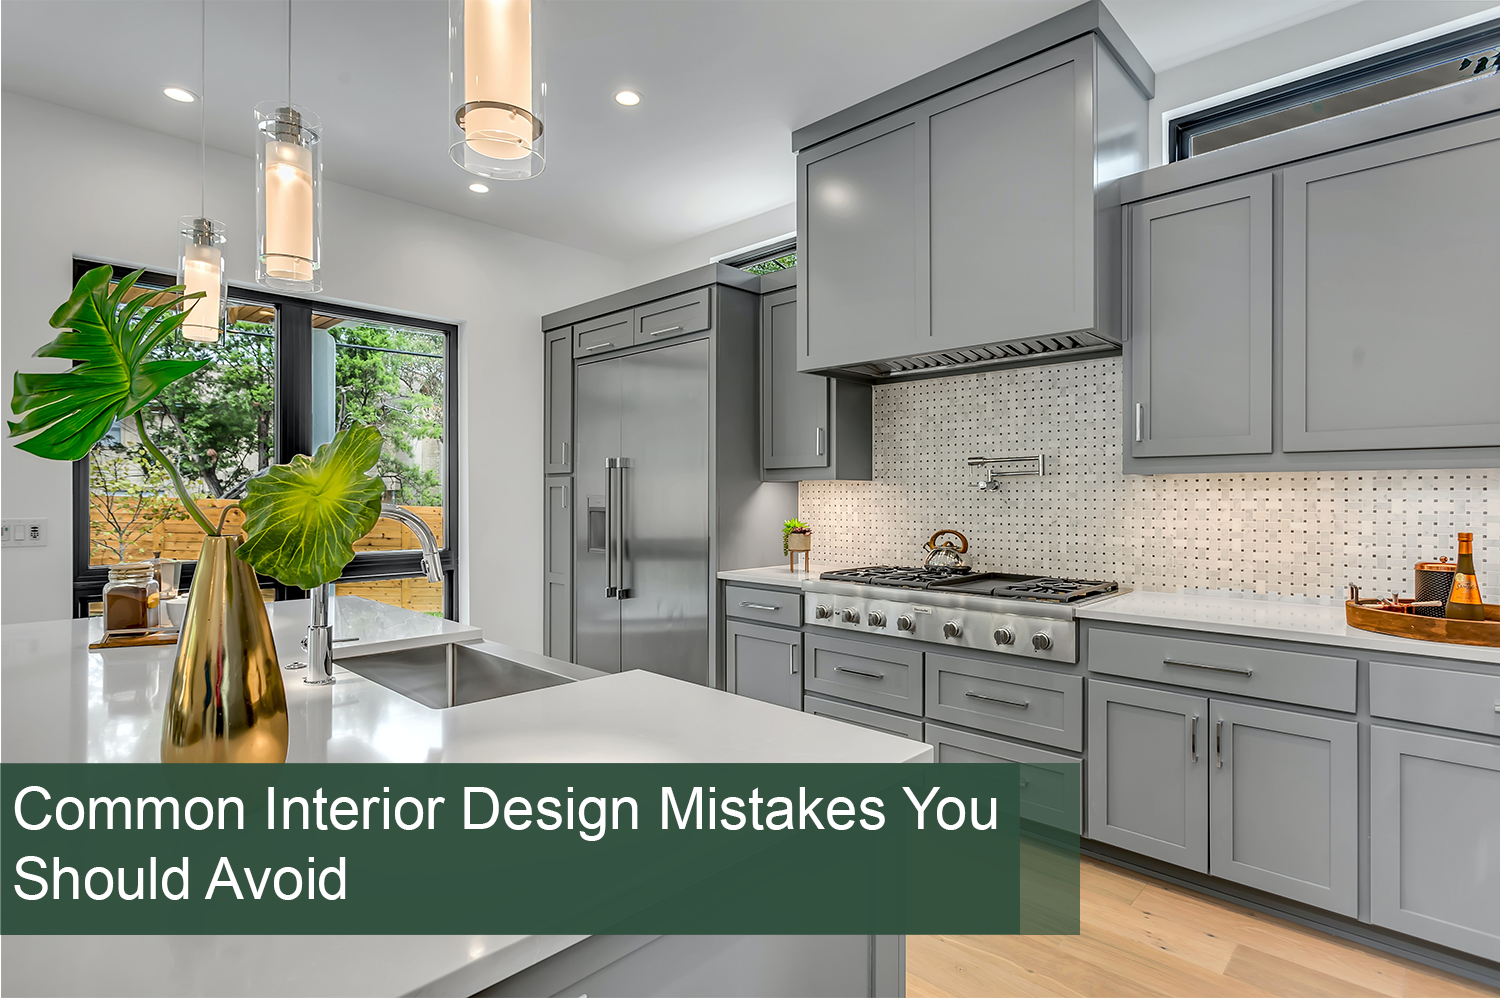 A kitchen with gray cabinets and pendant lights over the island - interior design mistakes have been avoided here.